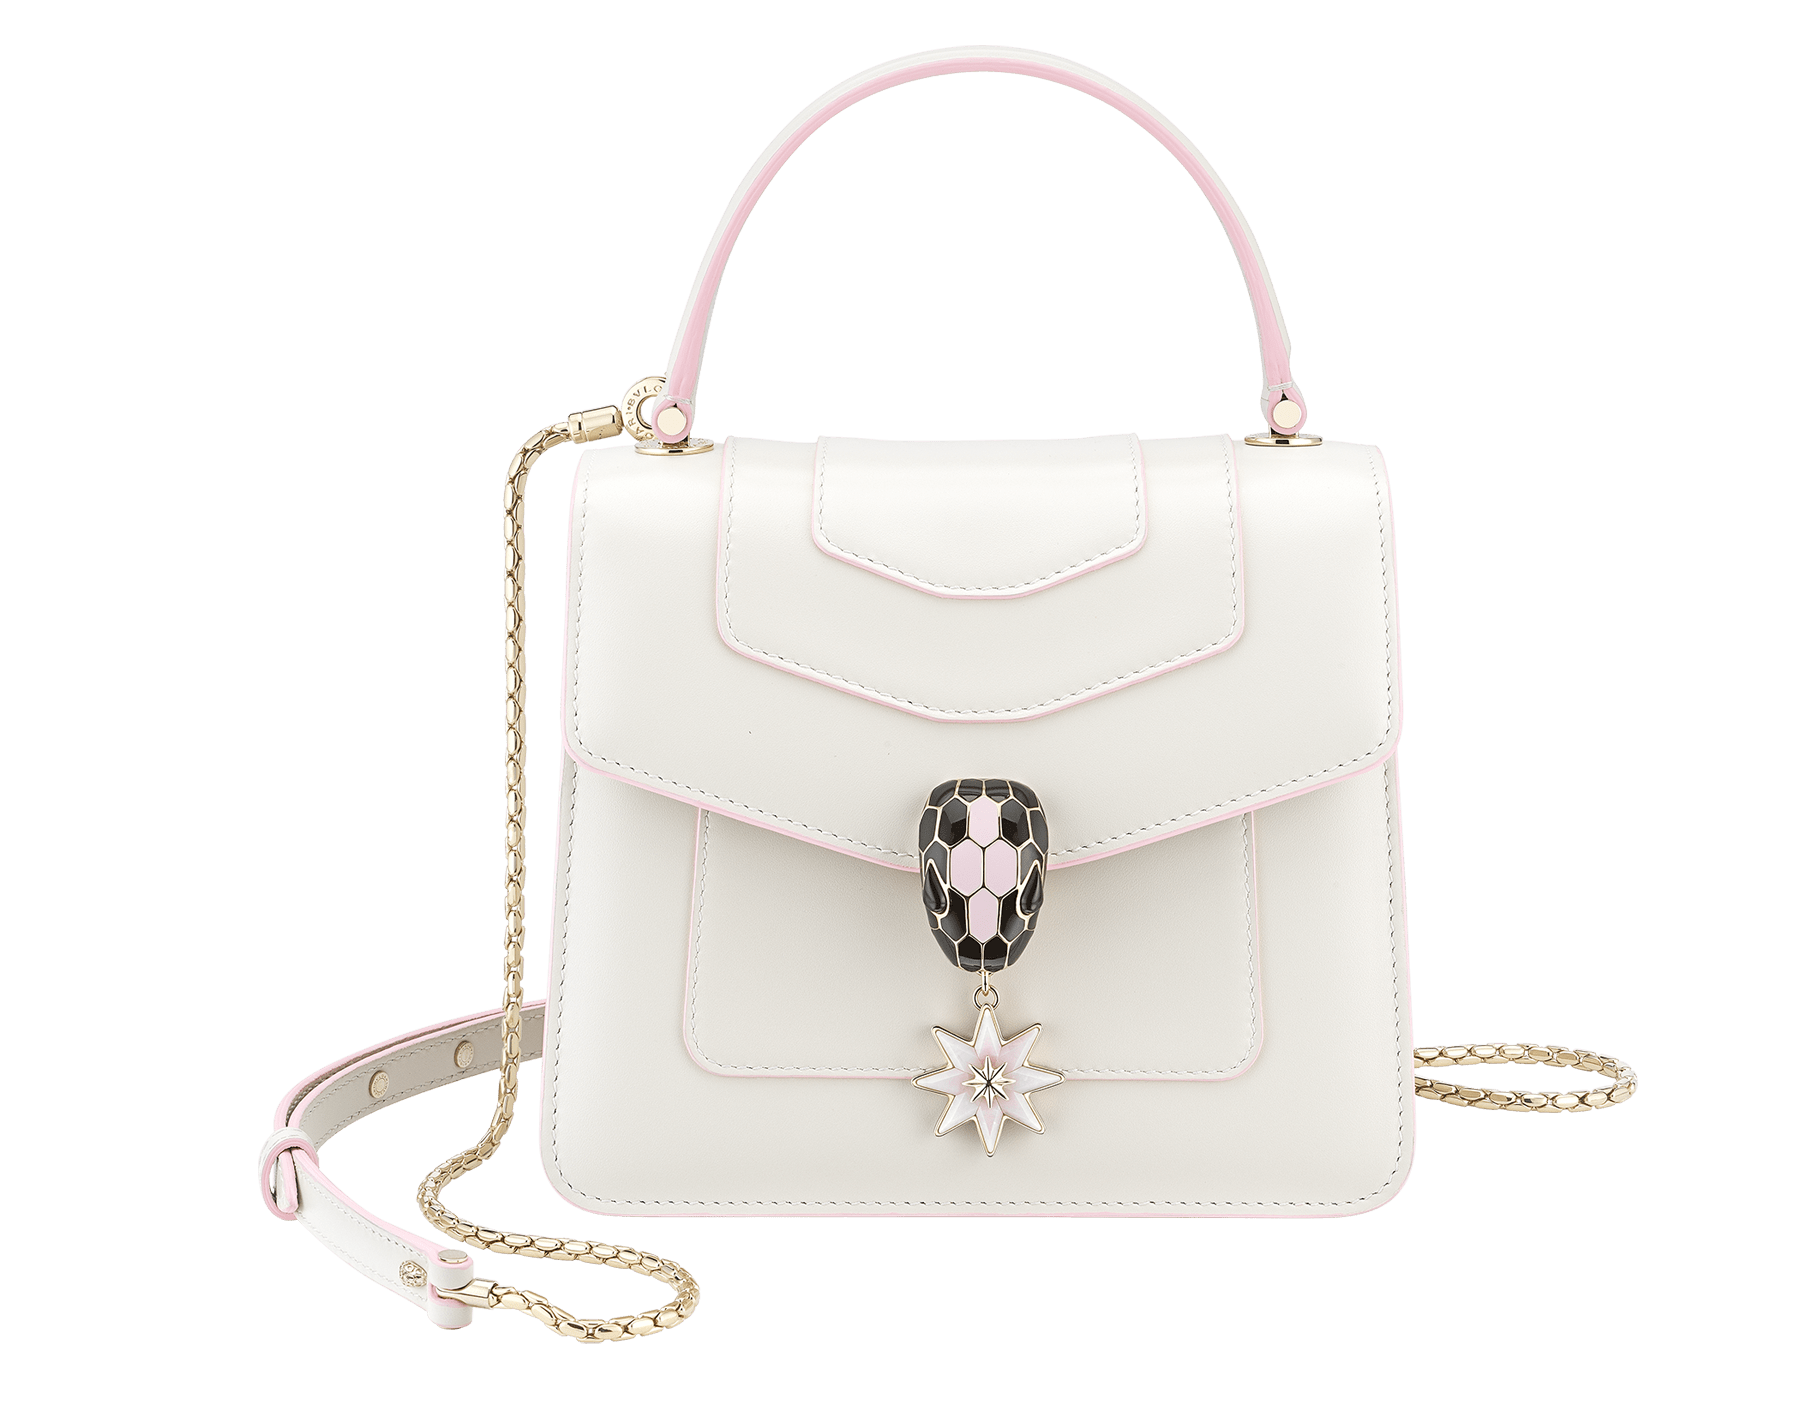 Serpenti Forever Holiday Season crossbody bag in white agate calf leather, bronze and silver brushed metallic calf leather. Snakehead closure in light gold plated brass embellished with black and sakura pink enamel, black onyx eyes and a pink opal eight-pointed star charm. 289372 image 1